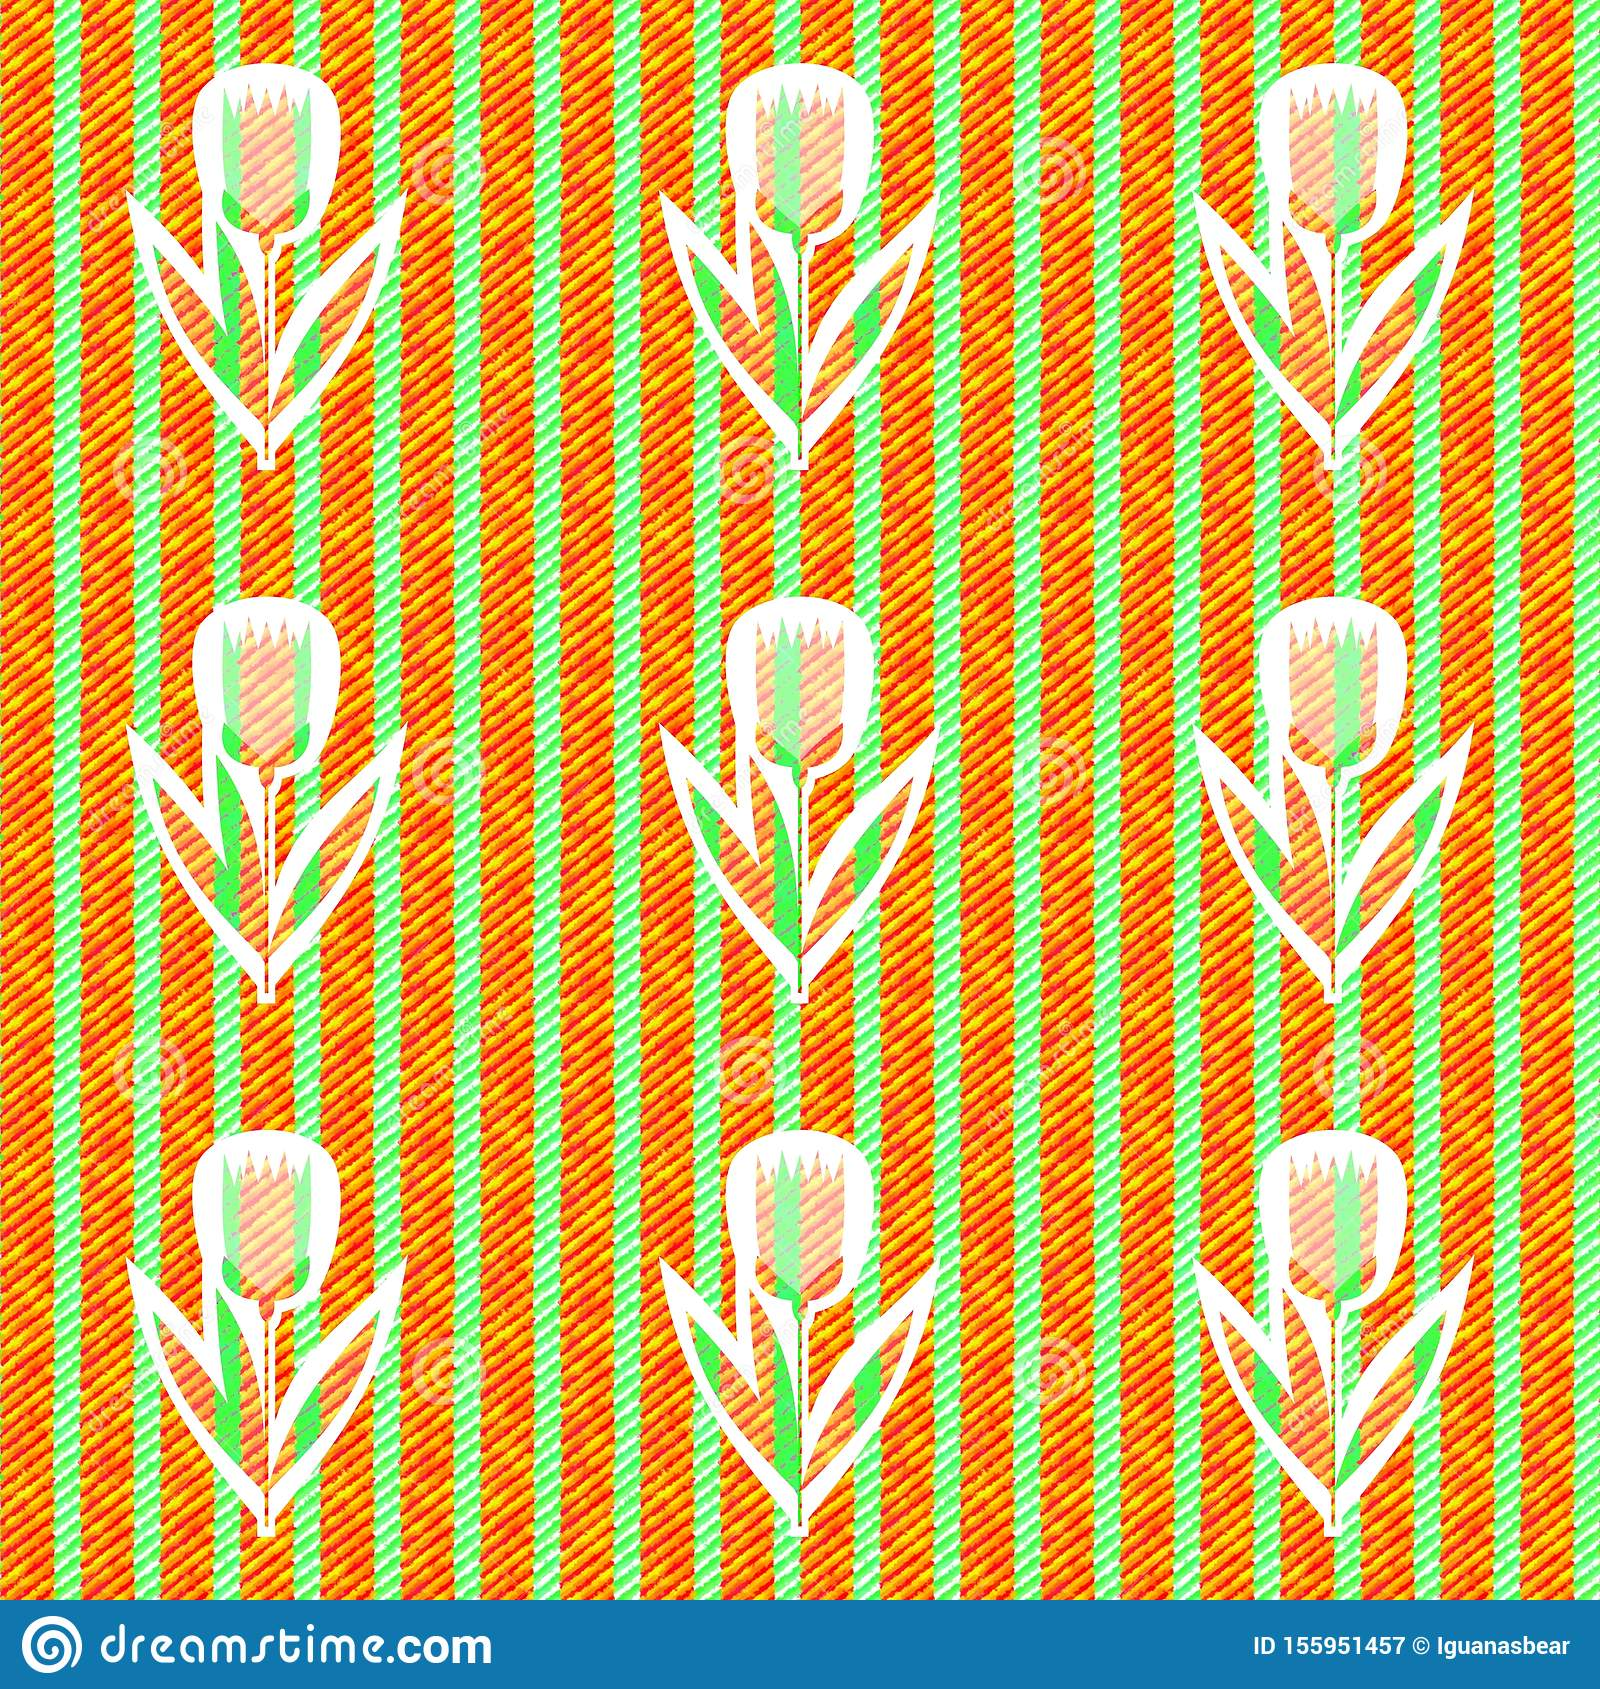 Abstract green orange pattern with cloth texture - digitally rendered seamles floral striped tile